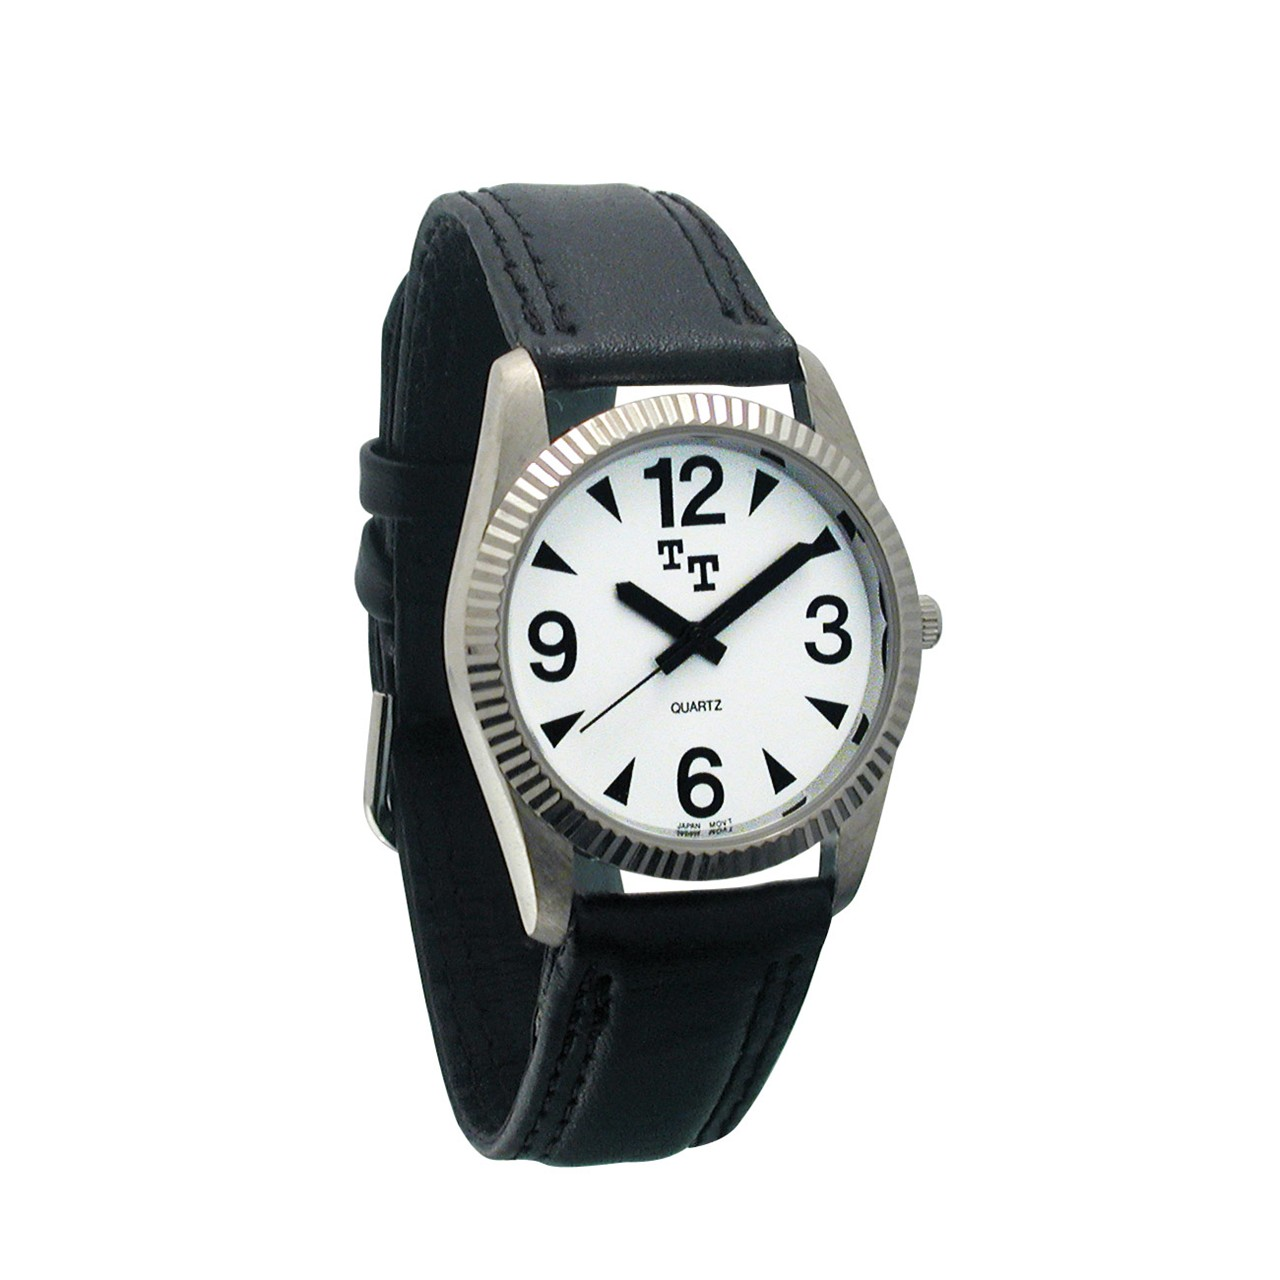 maxiaids tel time low vision mens with leather